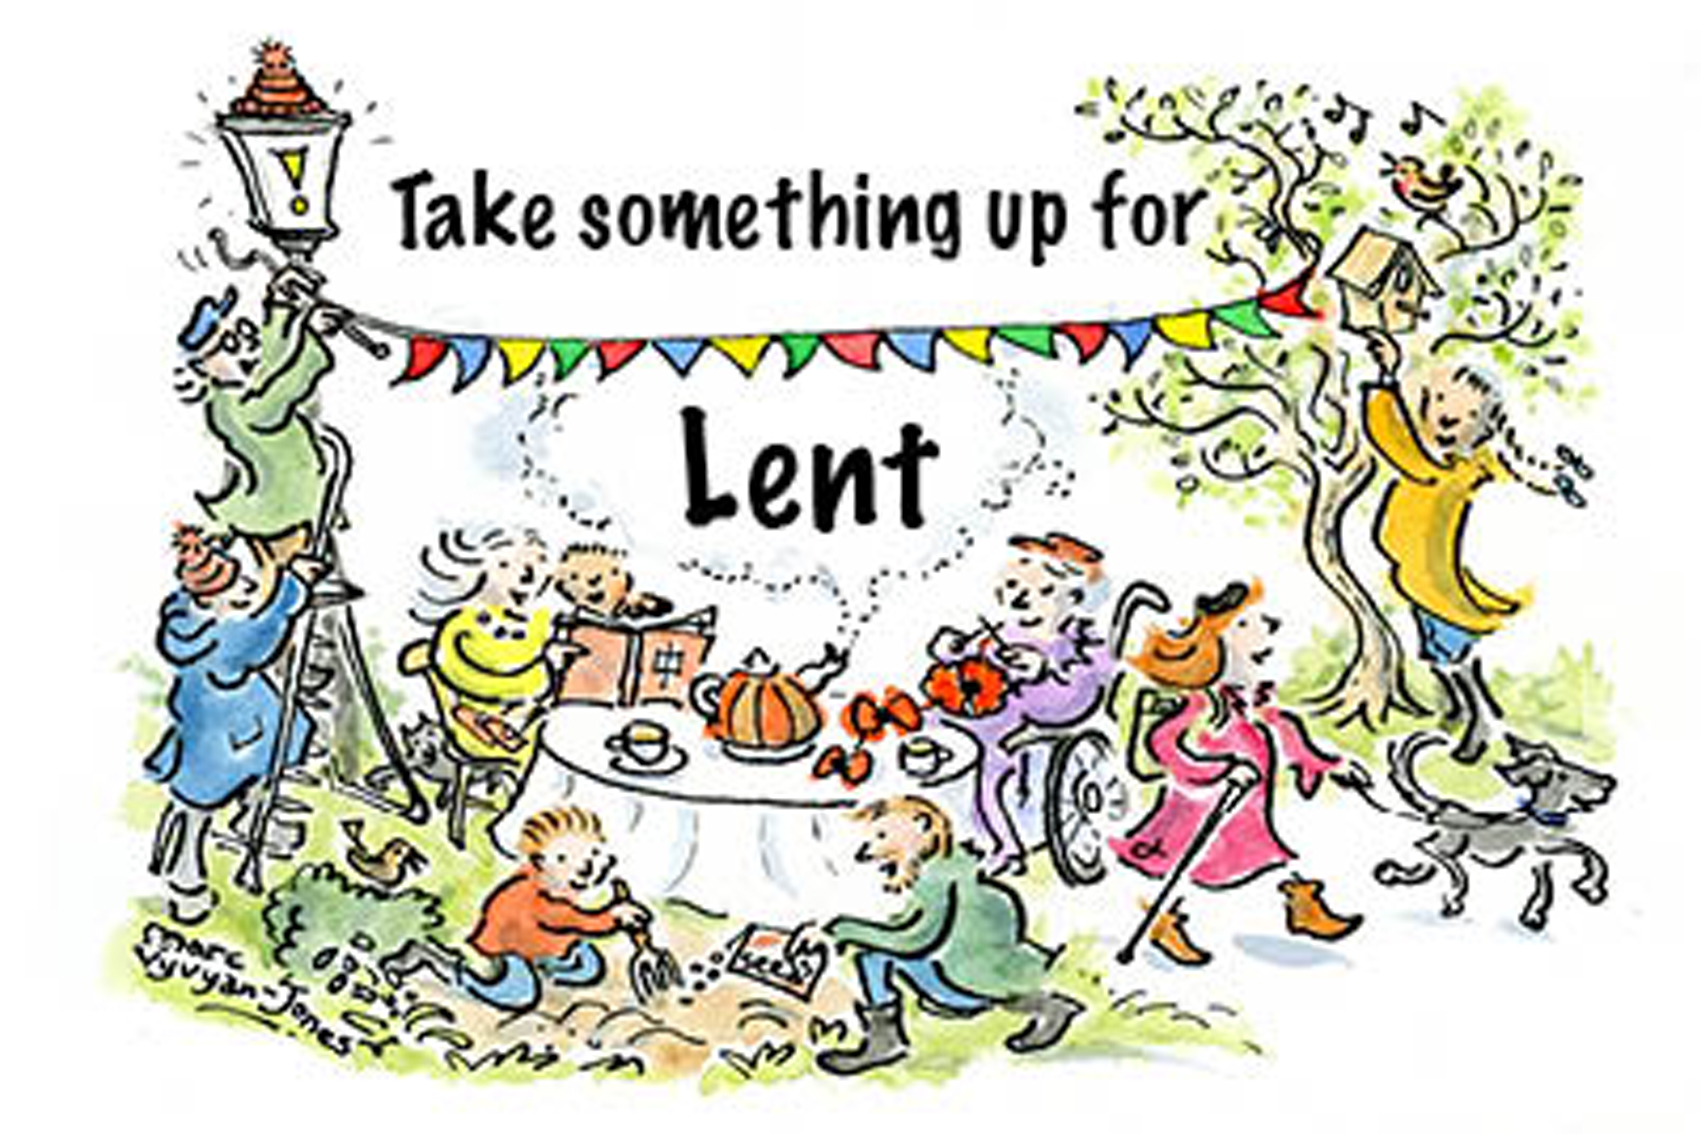 Illustration for a 'take something up for Lent' project, used as cover artwork